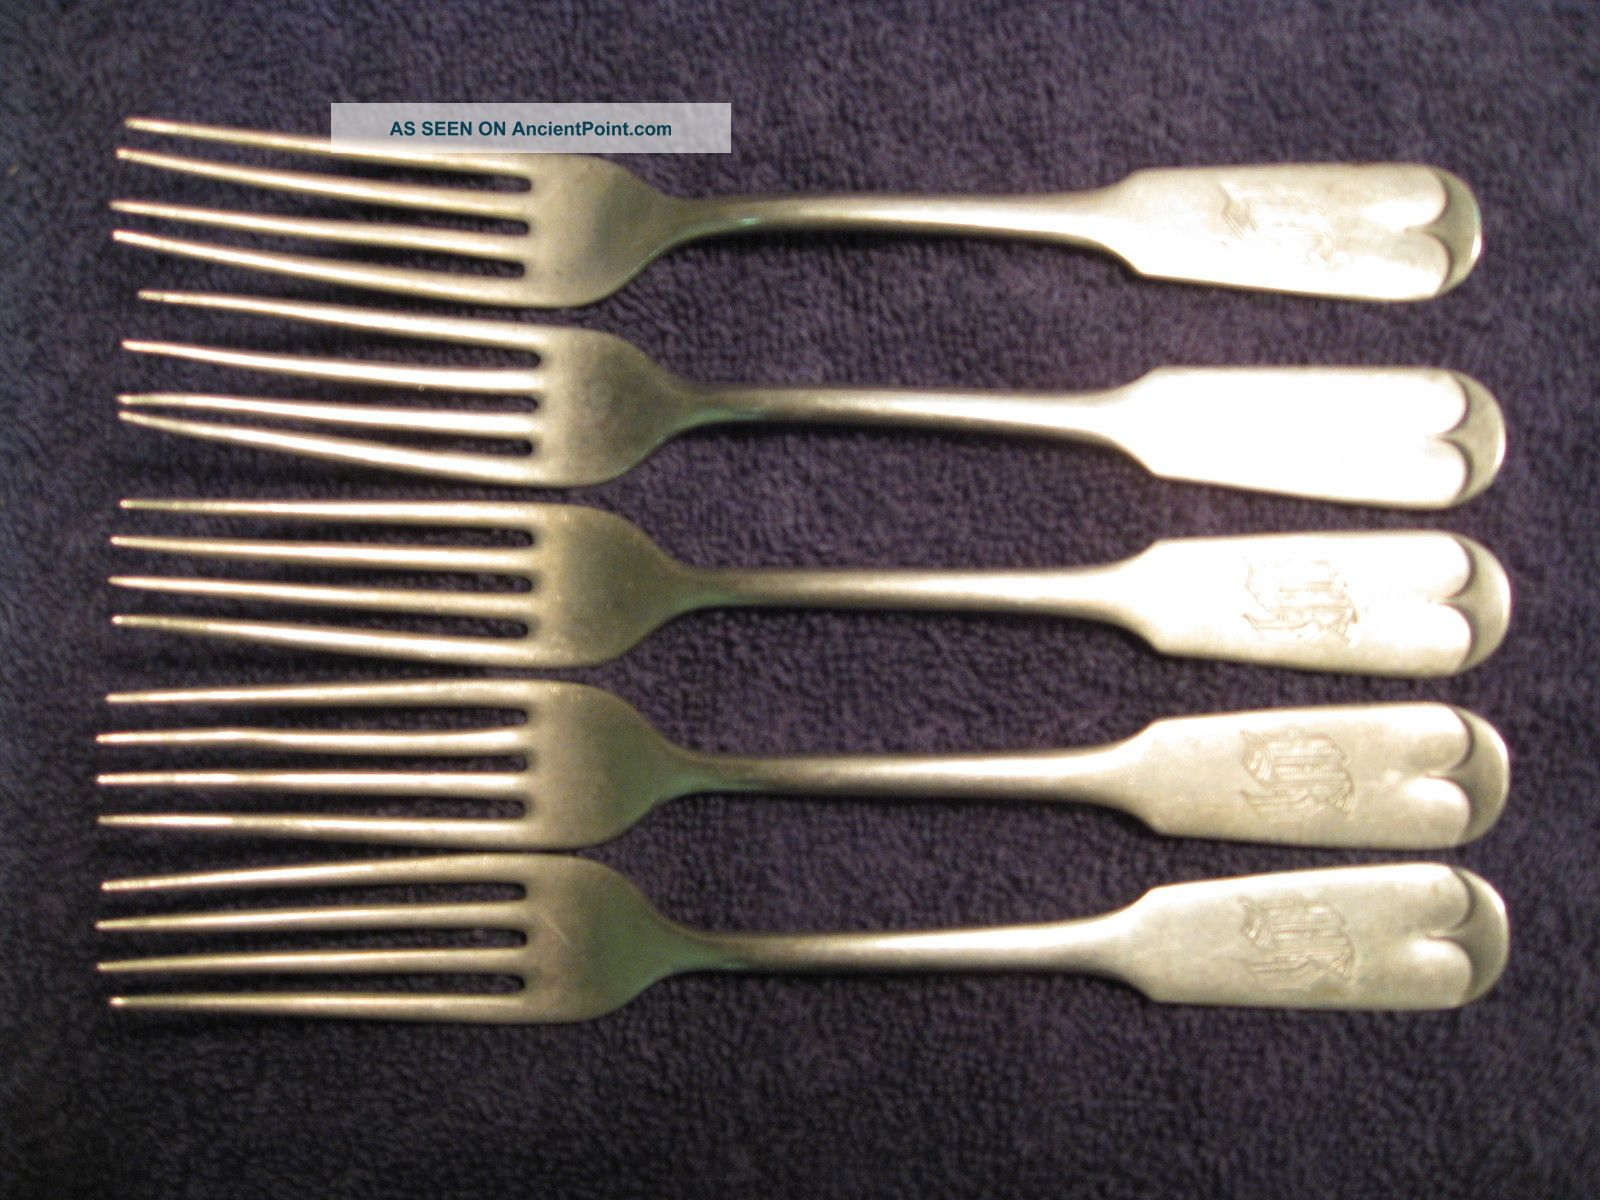 Vintage Brazil Silver Forks Other photo